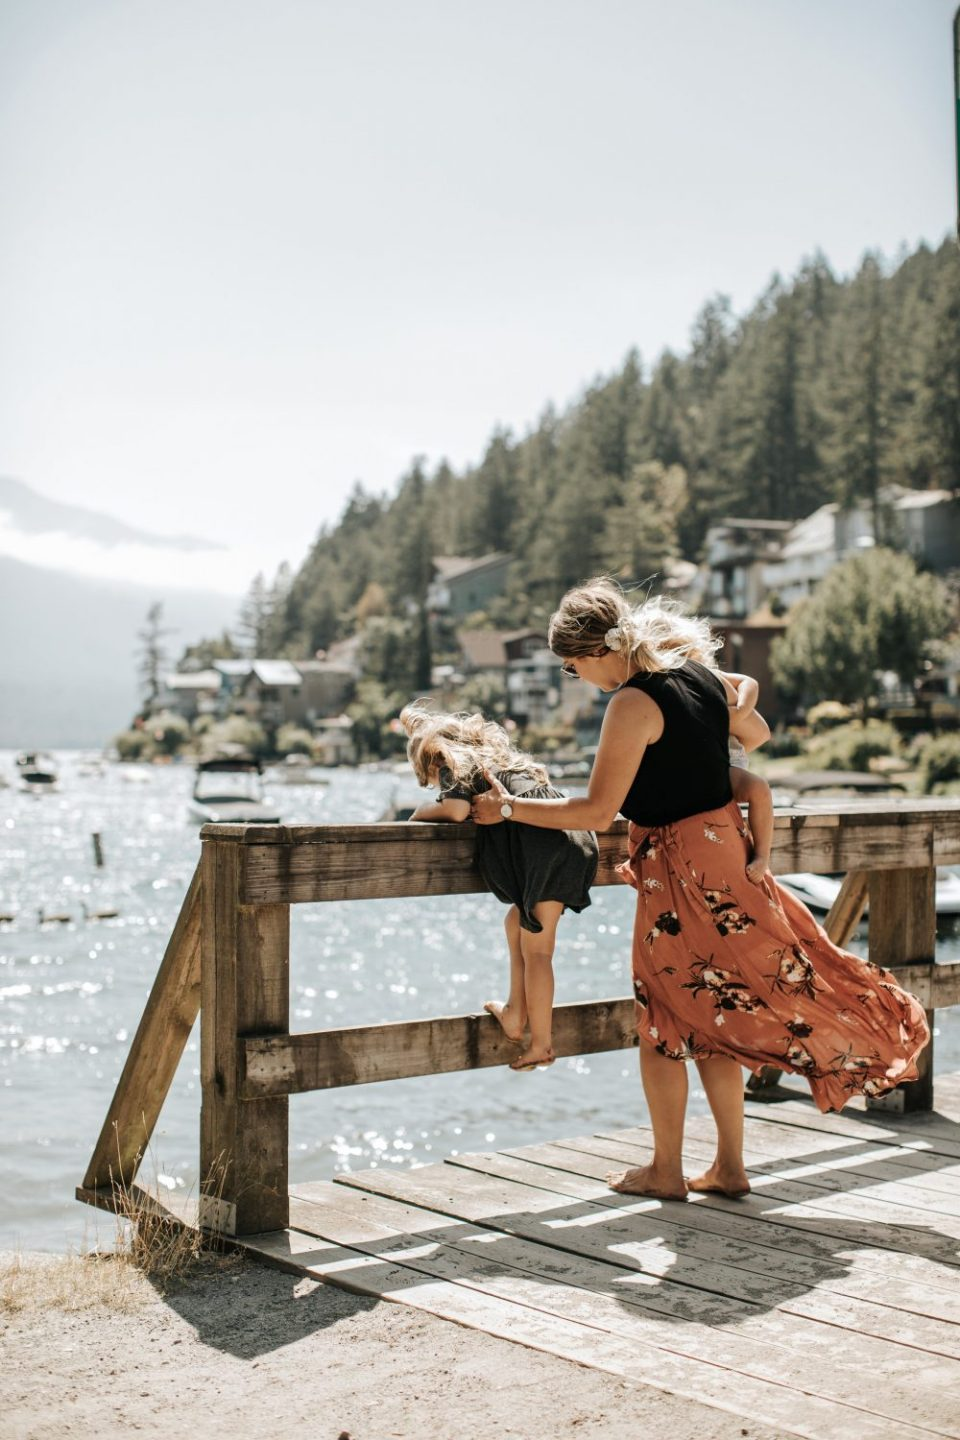 Things to do Near Cultus Lake in Chilliwack